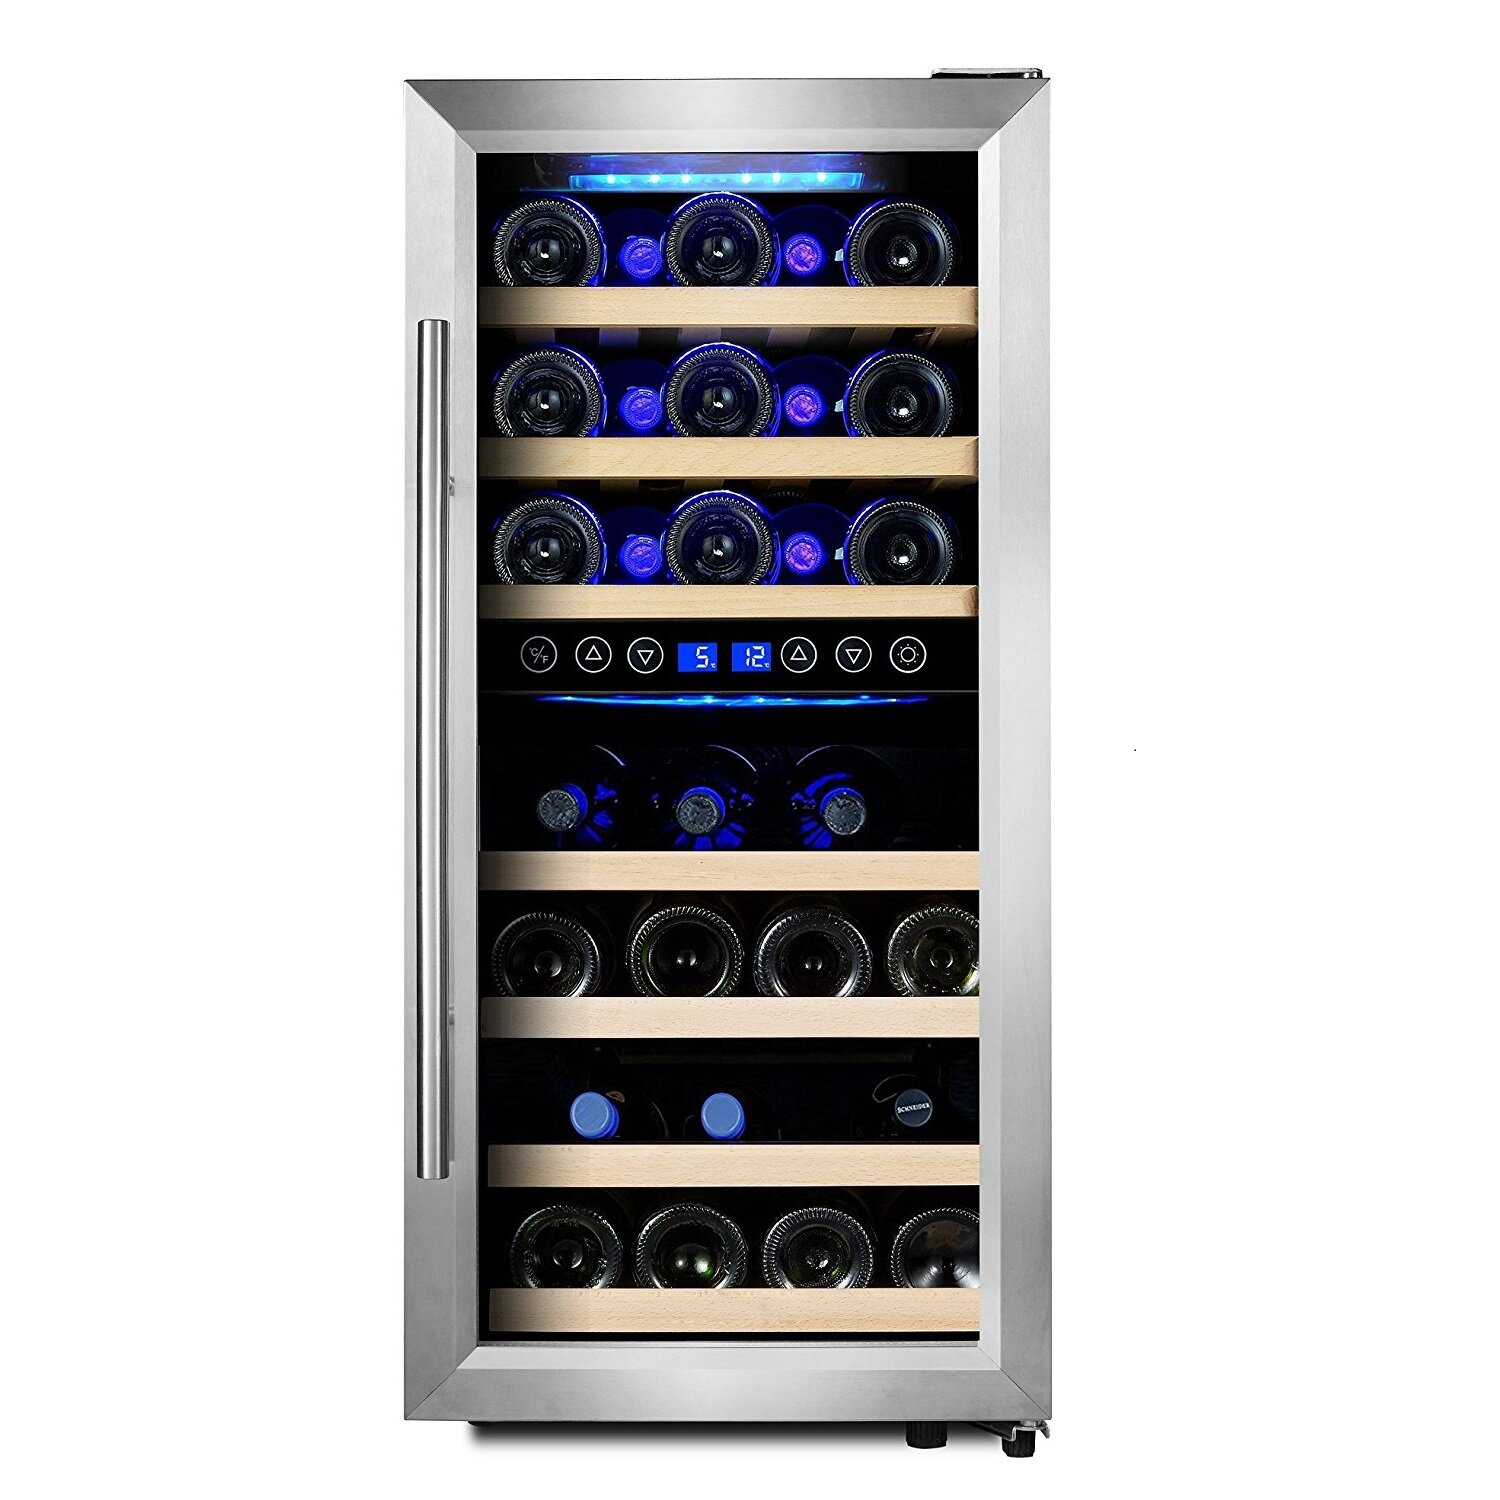 Phiestina 33 Bottle Dual Zone Freestanding Wine Refrigerator Reviews Wayfair